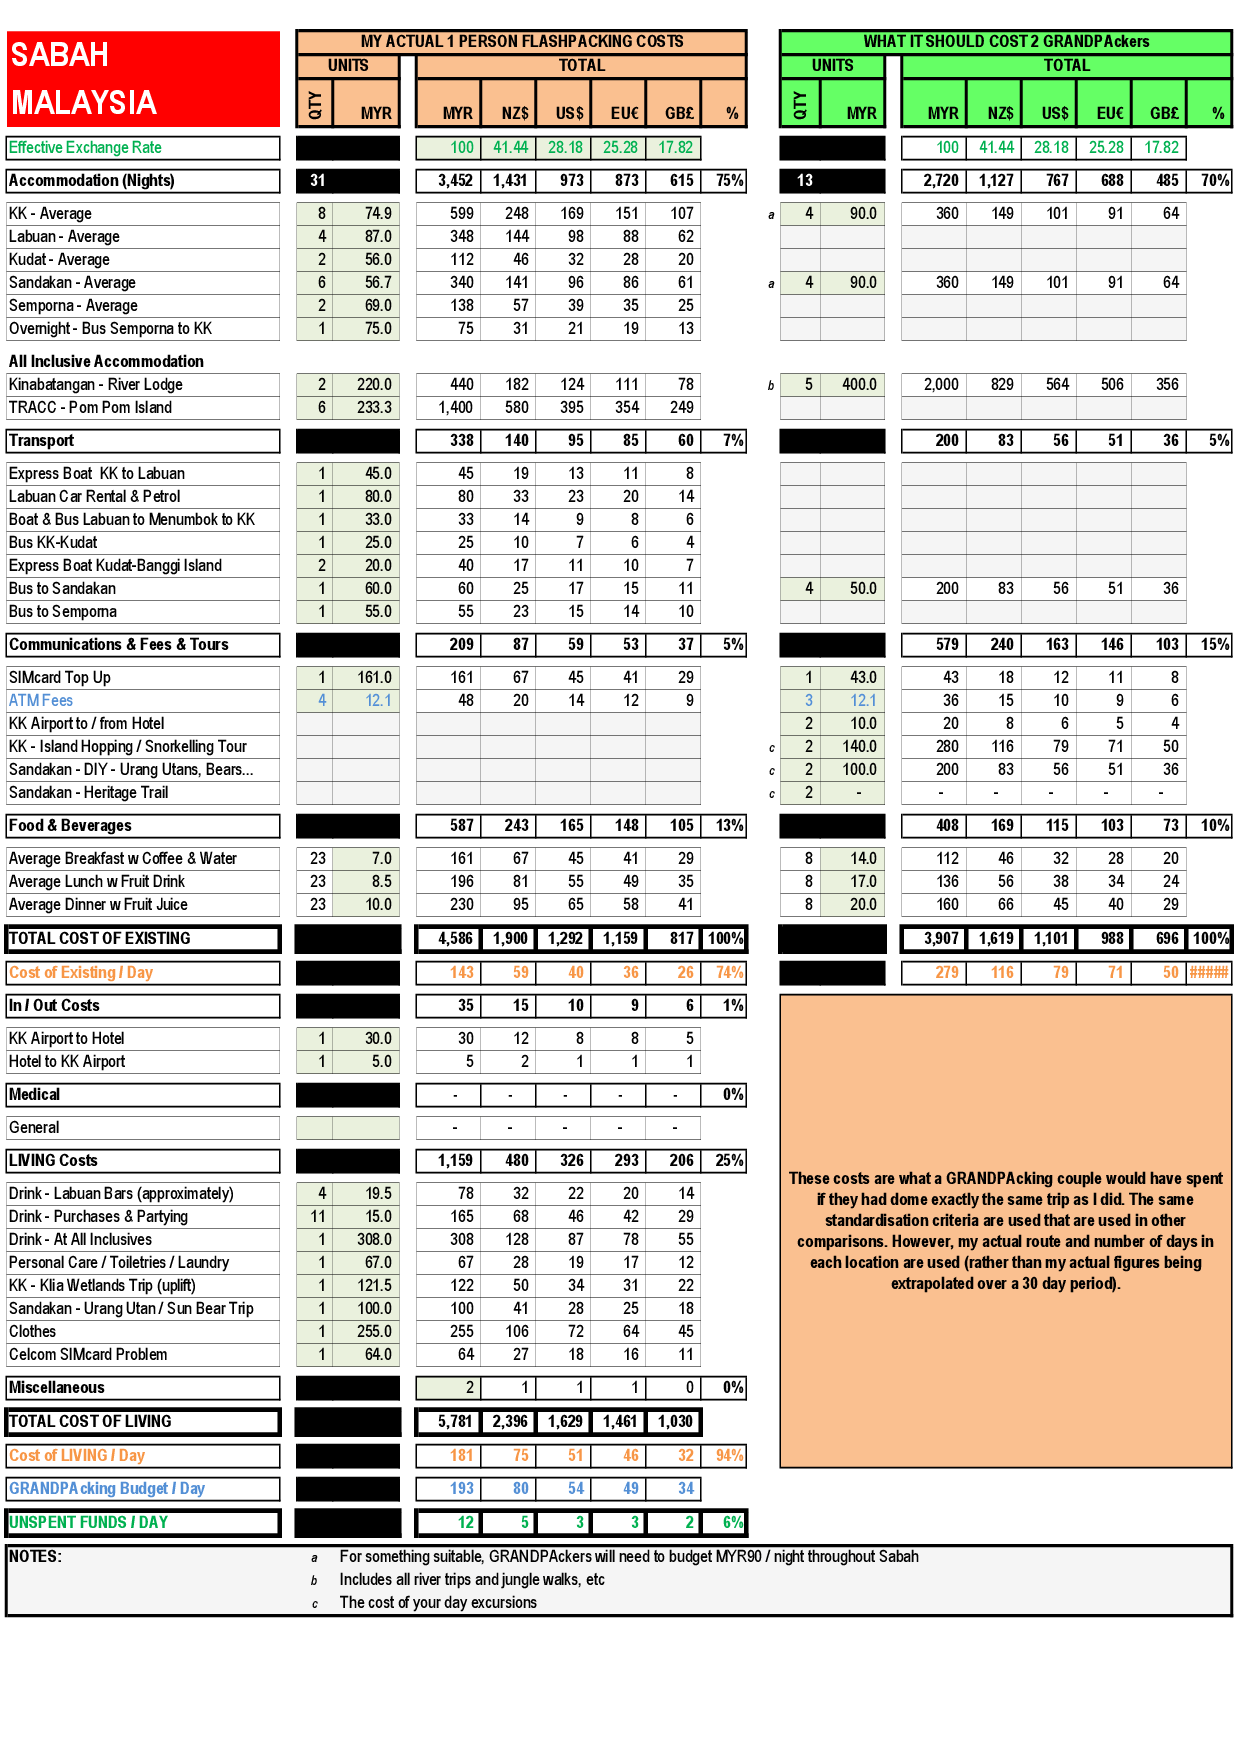 Cost Of Living Spreadsheet